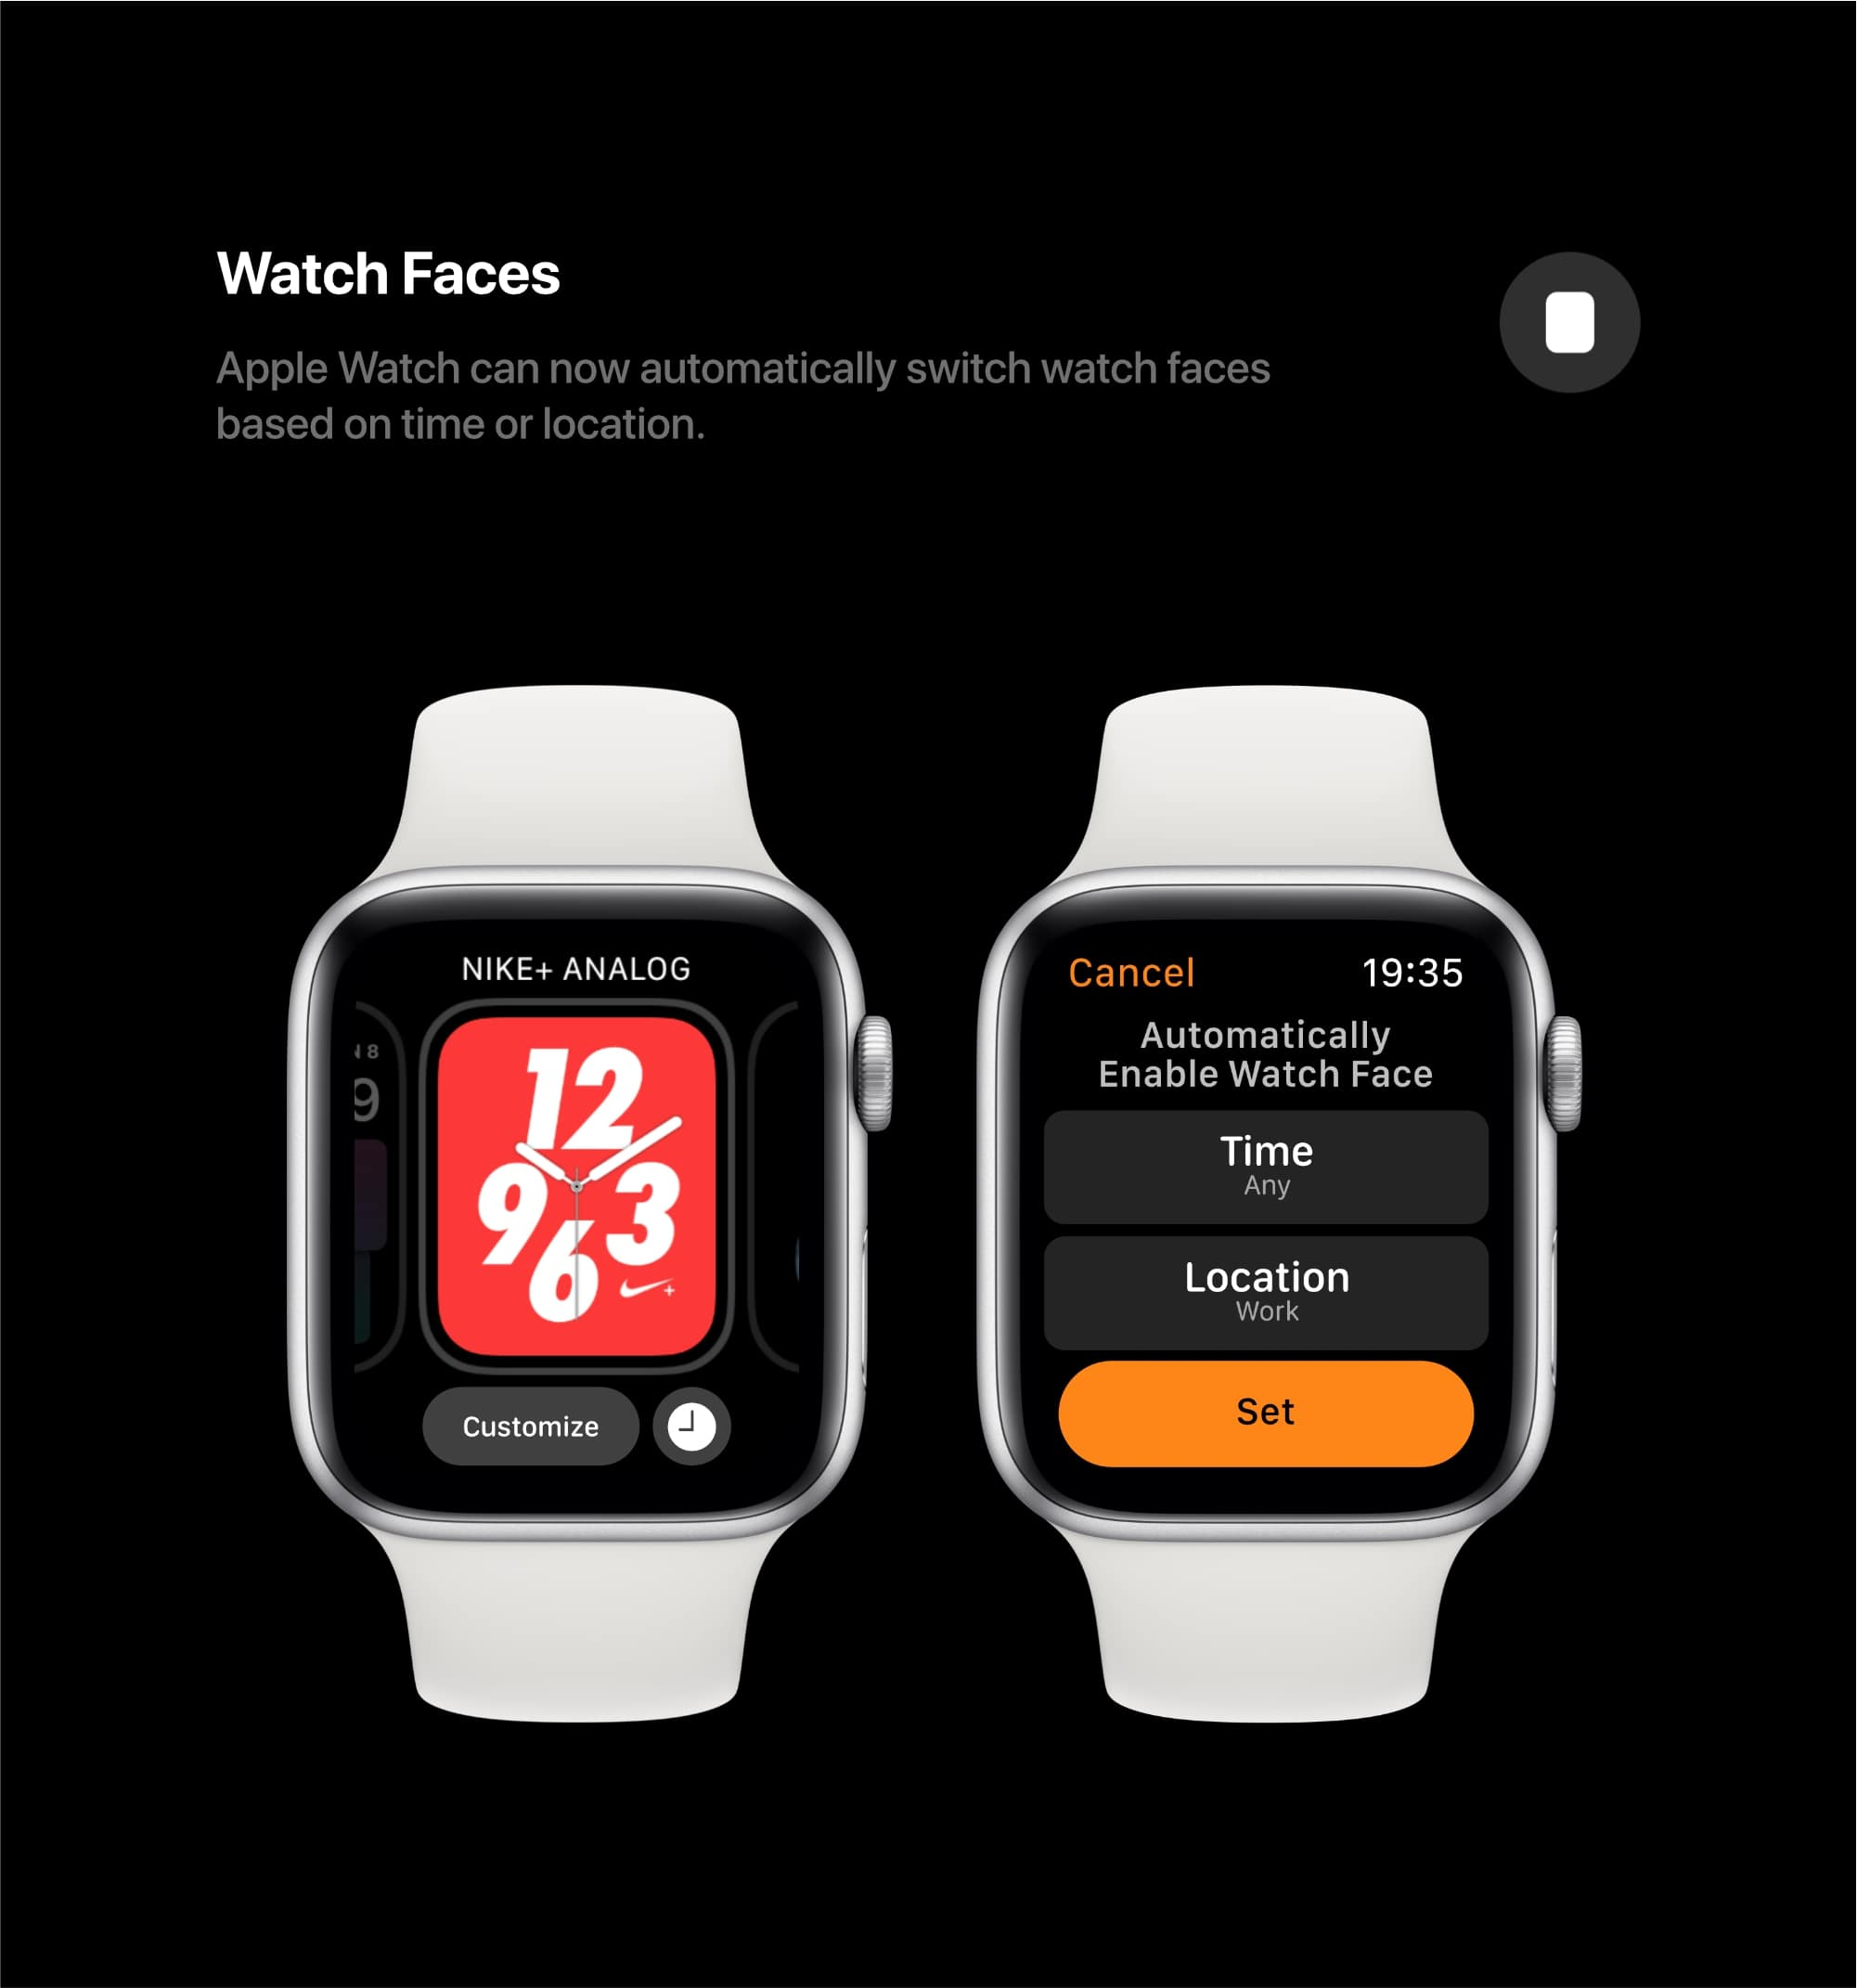 Apple Watch Watch Os 6 Concept 18